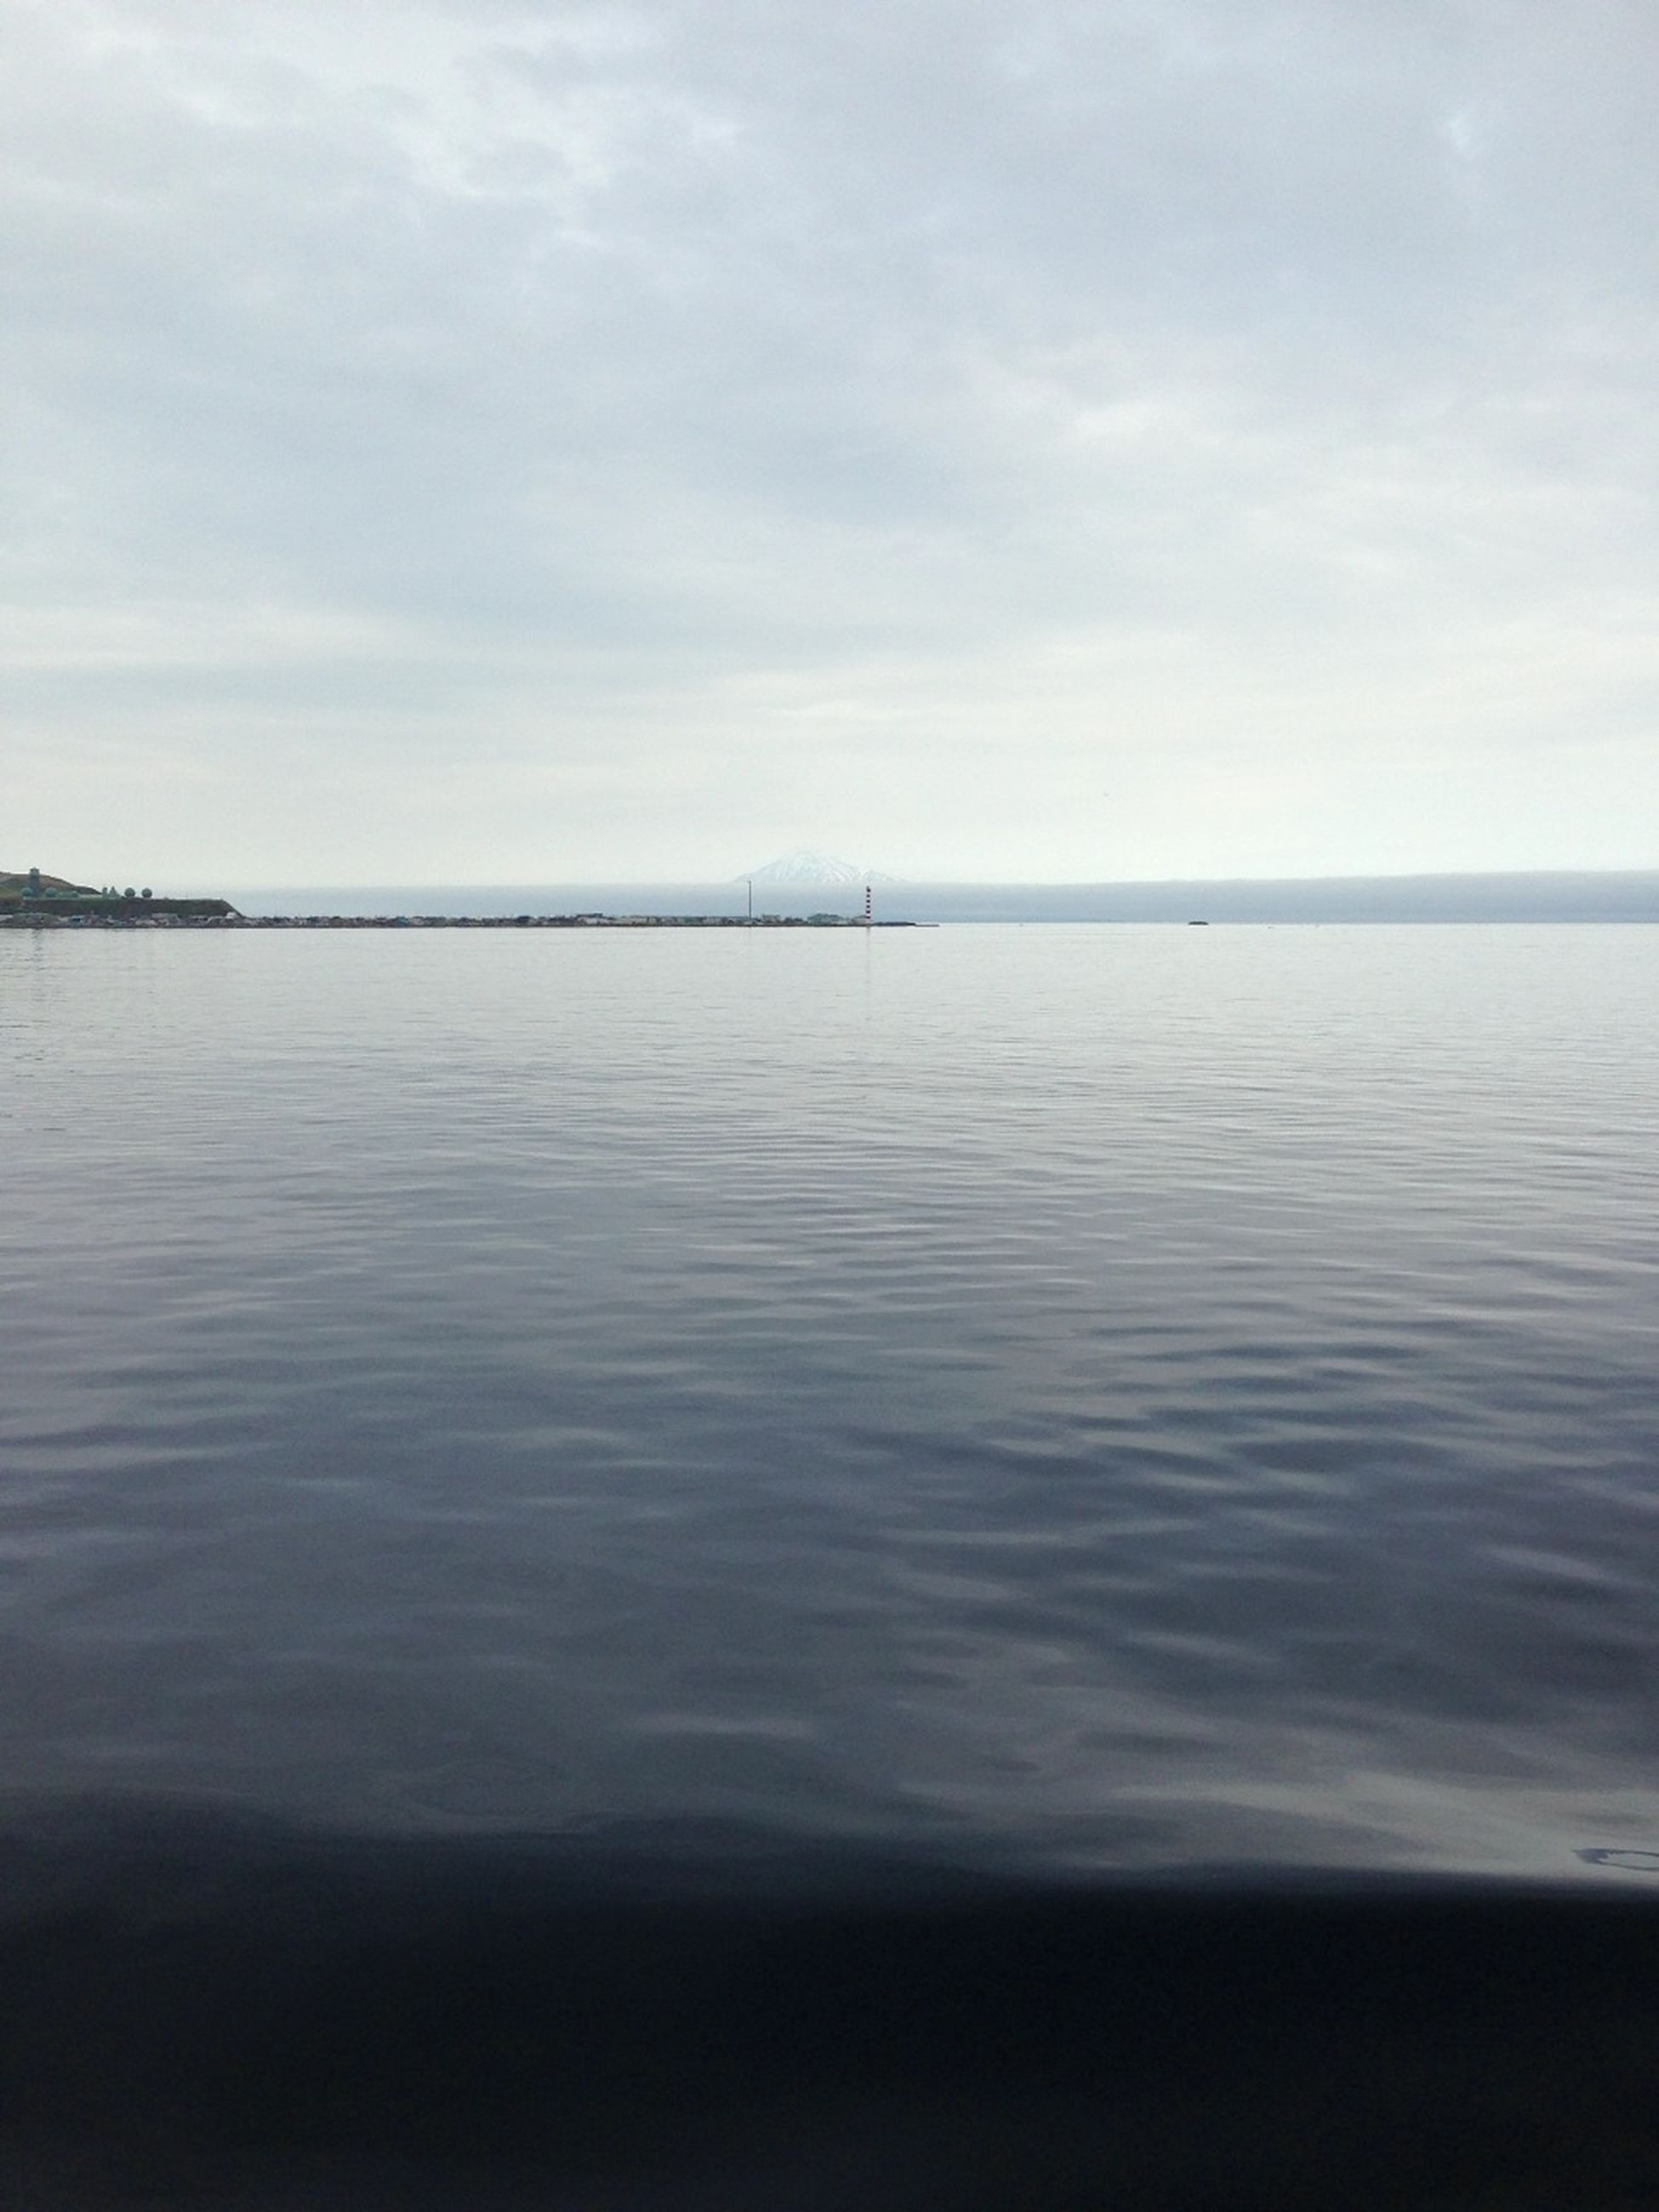 water, sea, sky, tranquil scene, horizon over water, tranquility, scenics, beauty in nature, waterfront, cloud - sky, nature, idyllic, rippled, seascape, cloud, cloudy, calm, beach, outdoors, day